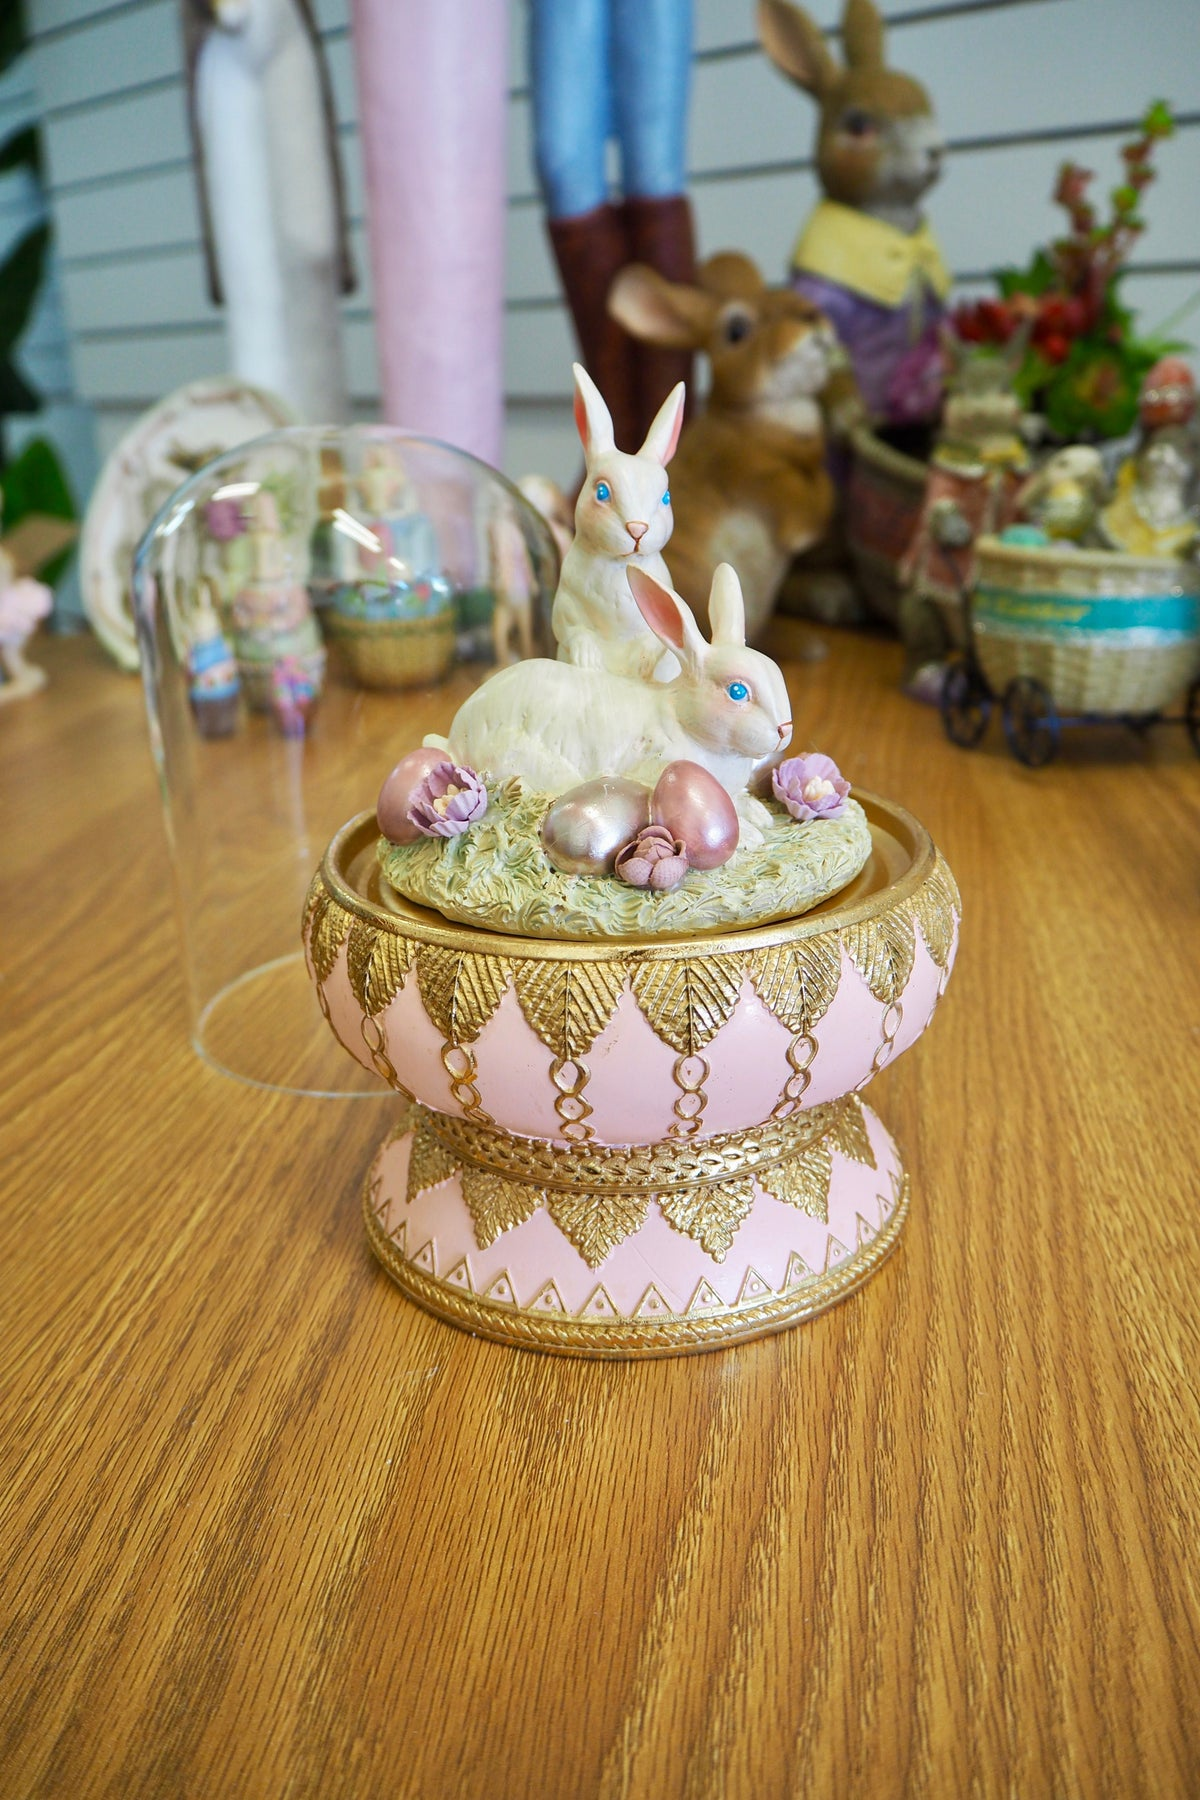 Easter Decorations - Rabbit In Cloche